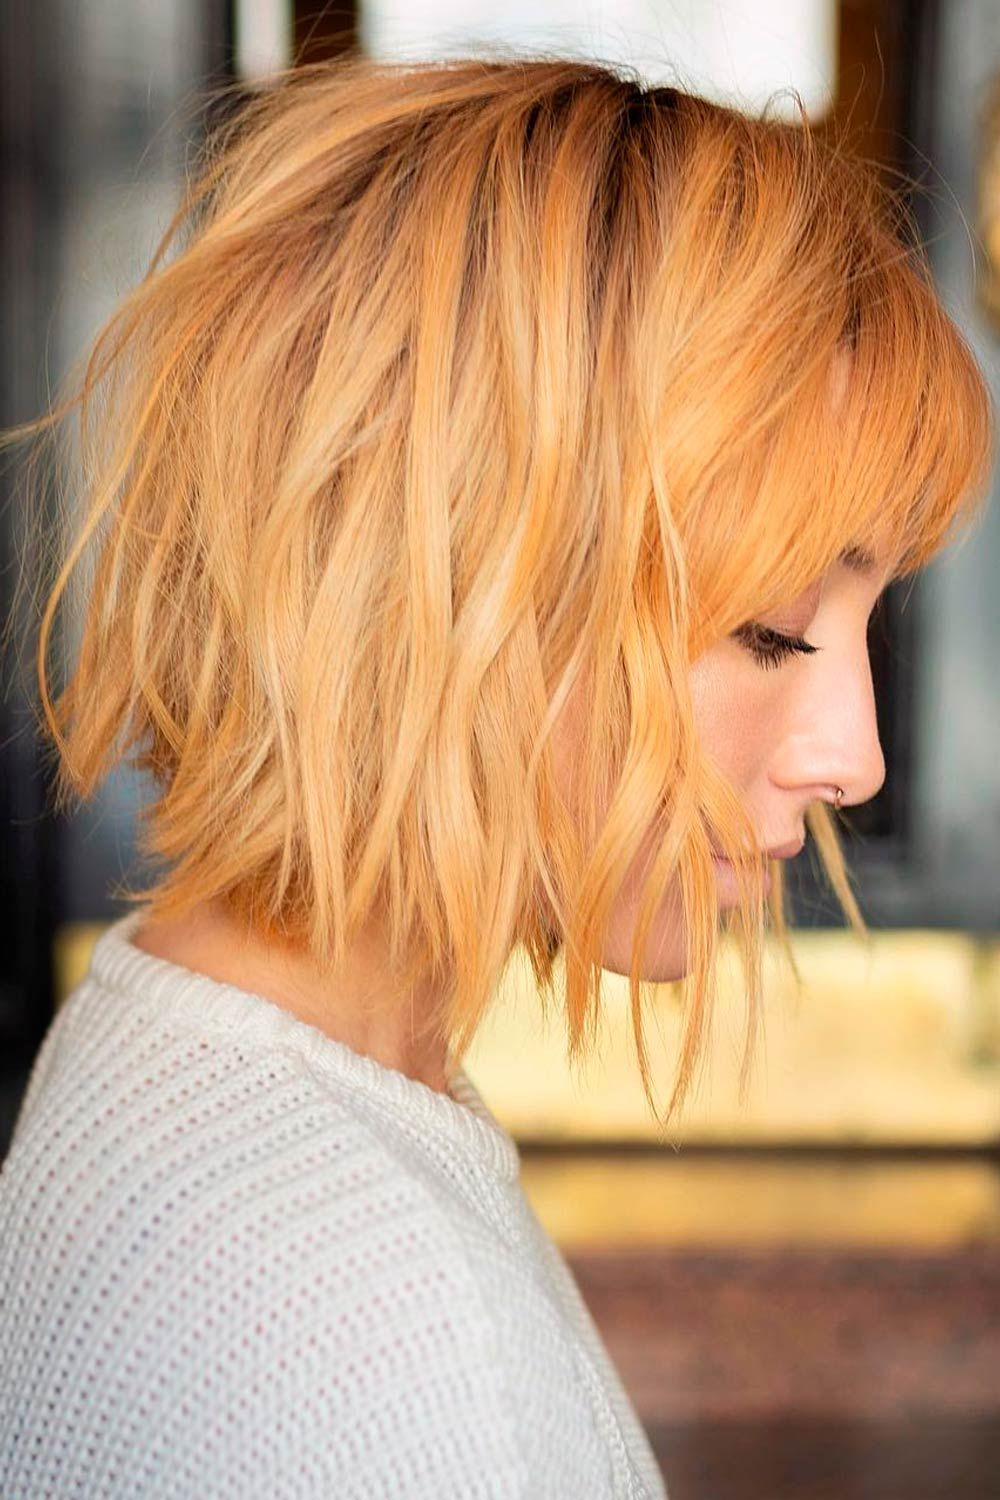 Short Hairstyles With Bangs, short curly hairstyles for round faces, short hairstyles for women with round faces